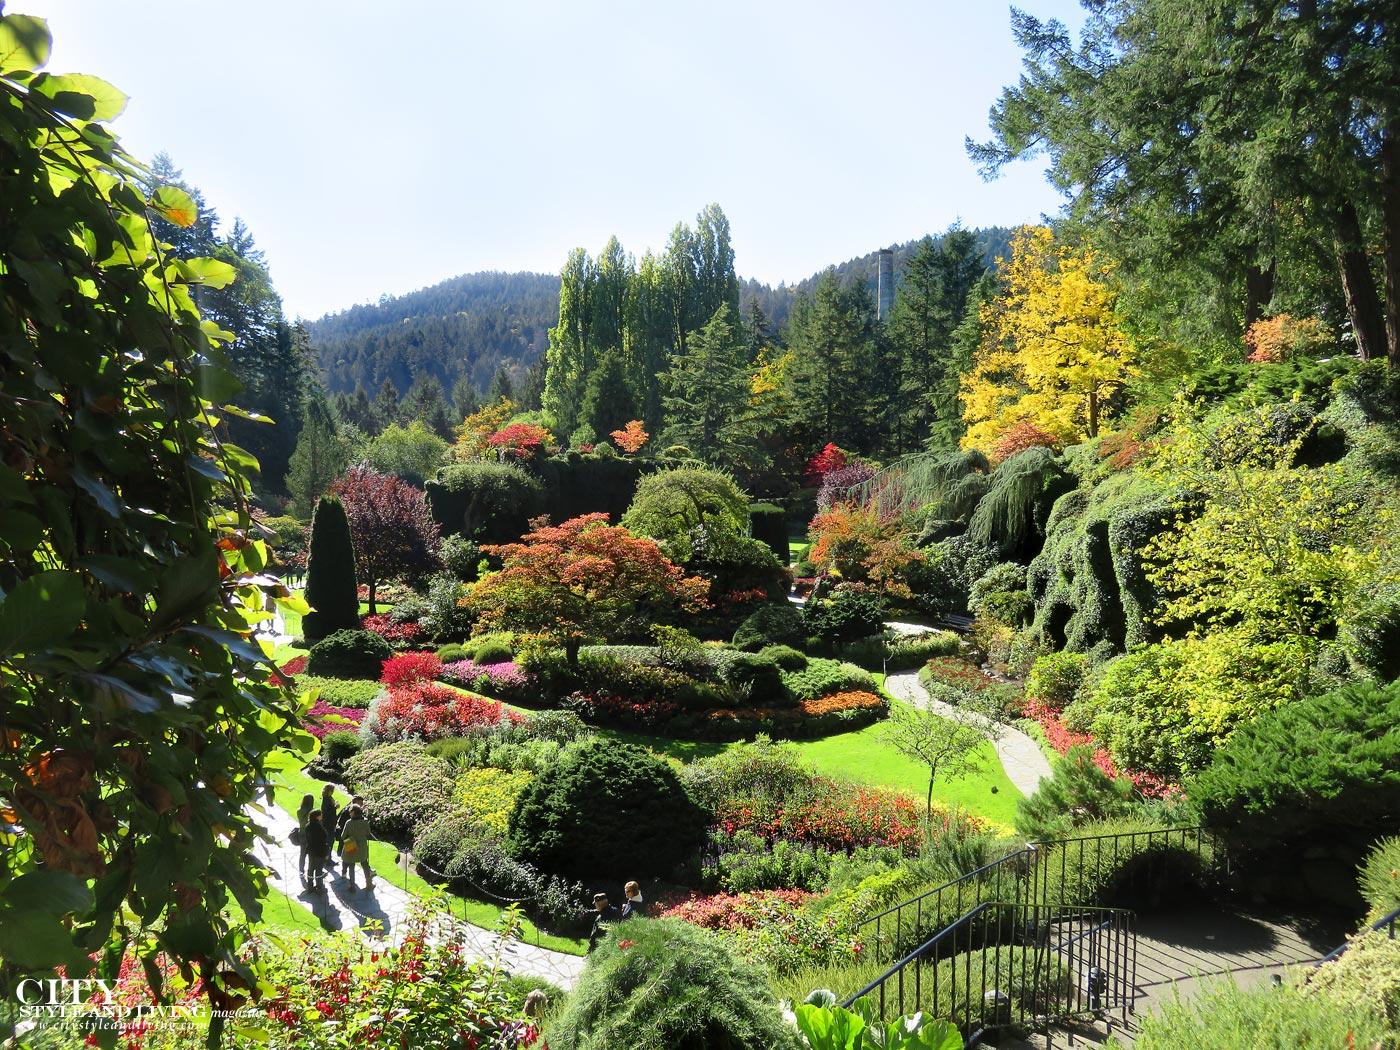 City style and living magazine Editors Notebook style fashion blogger Shivana M Butchart Gardens Sunken Garden_watermark